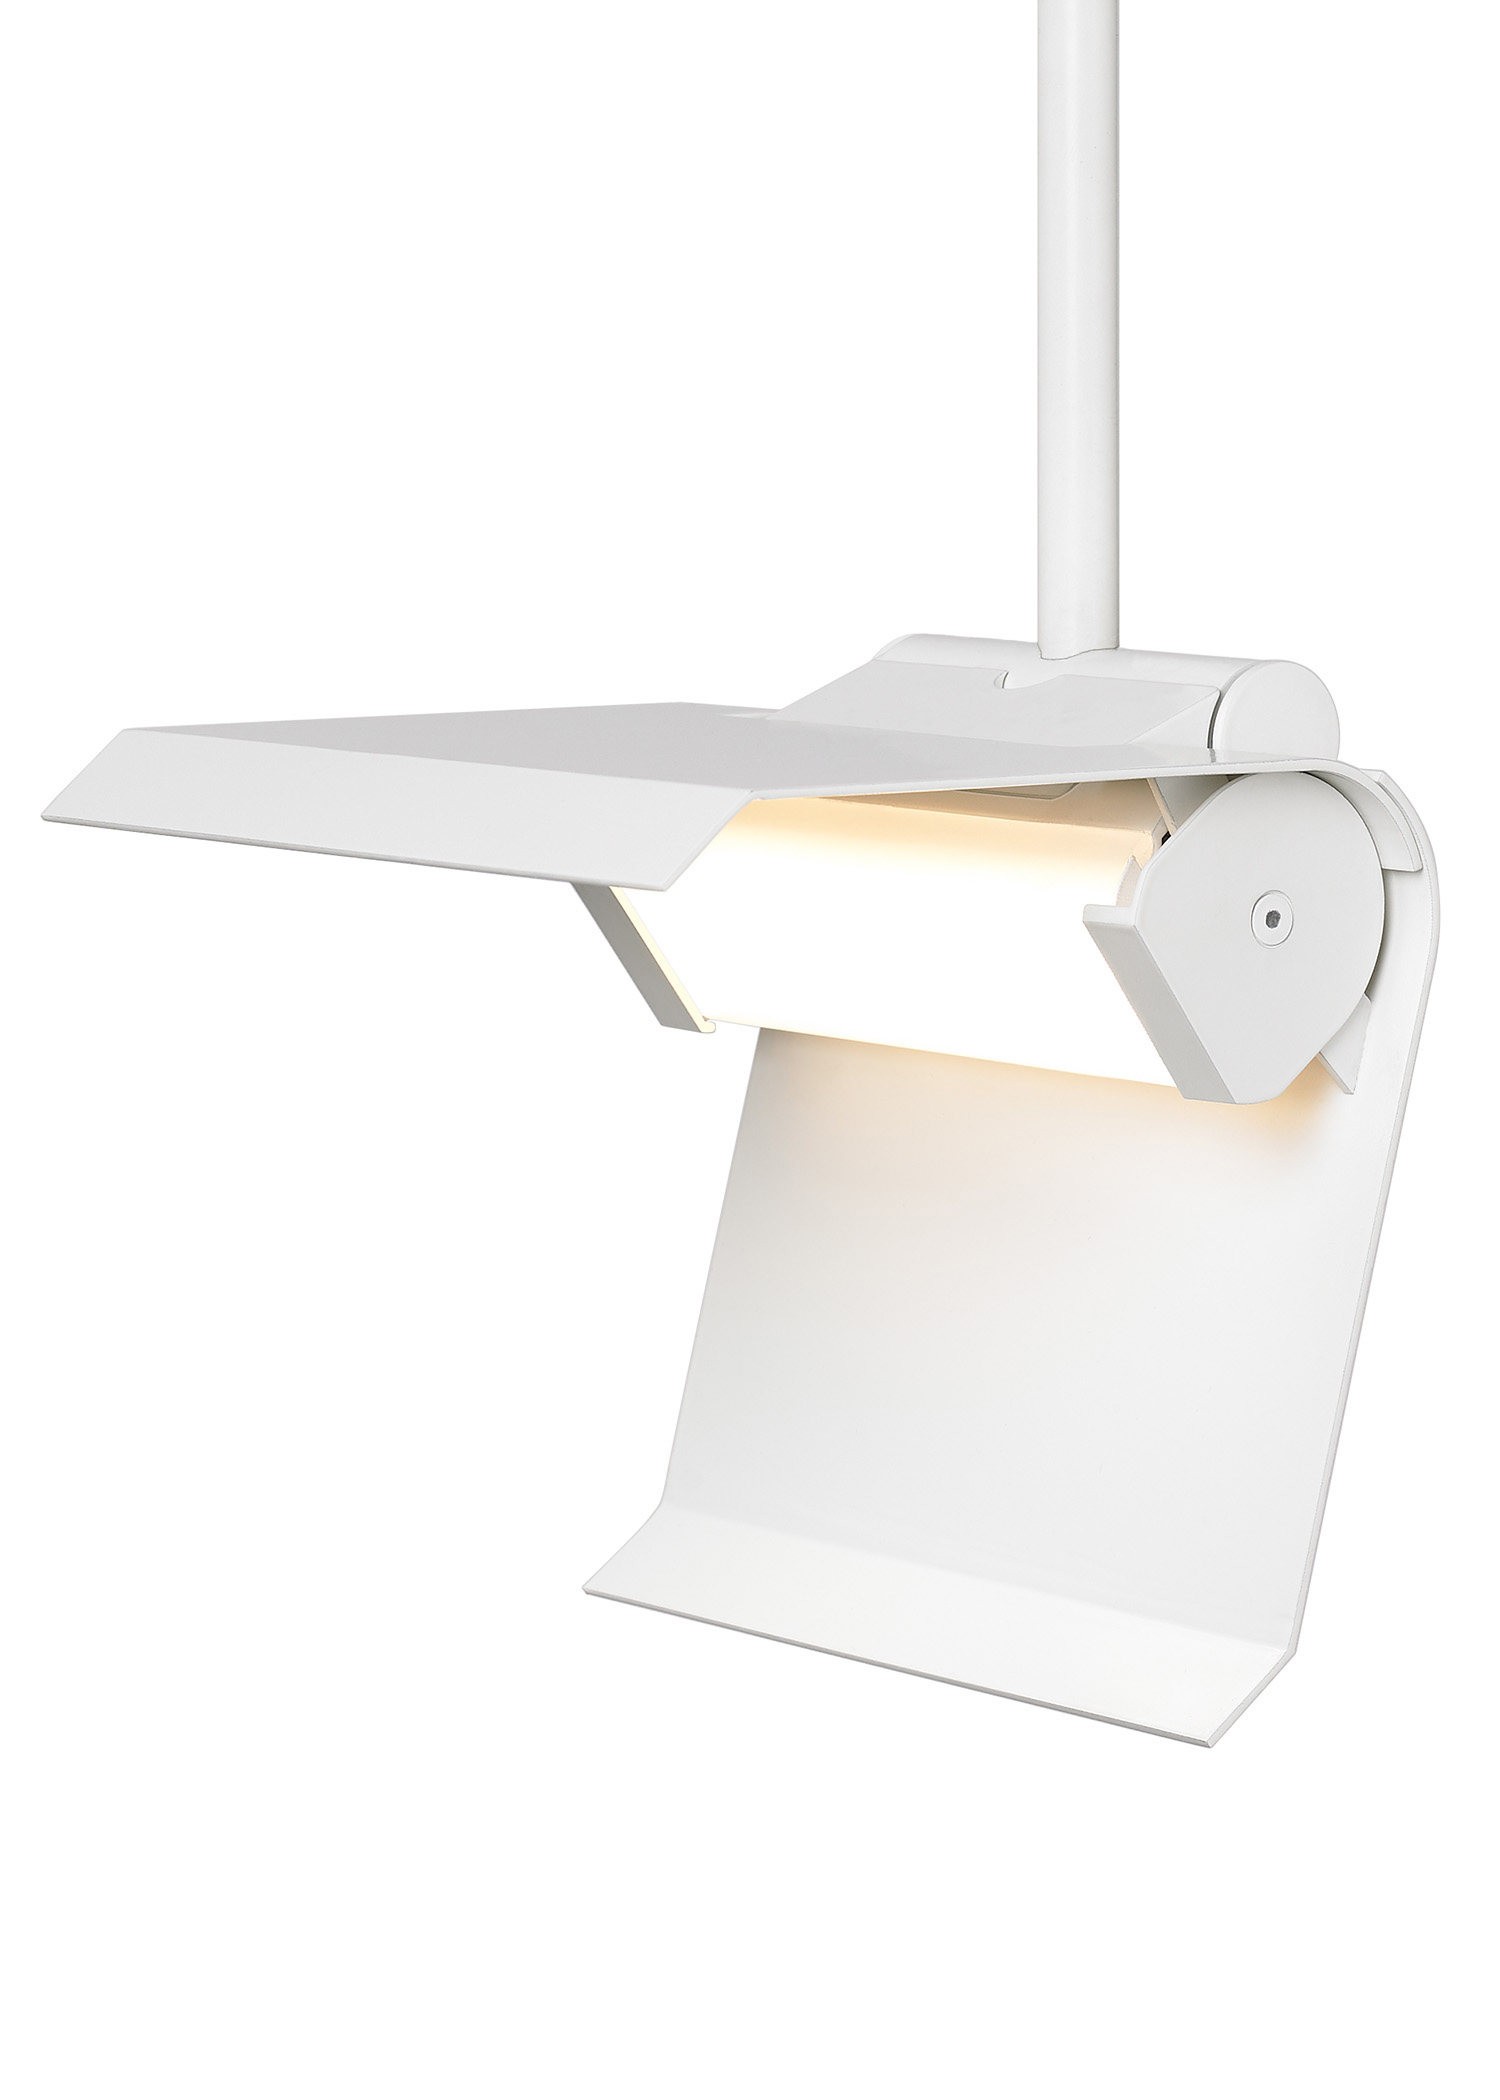 Tech lighting unveils new architectural heads the adjustable optic t trak fokis led line voltage track head from tech lighting offers impressive field flexibility without the restriction of factory set aloadofball Images